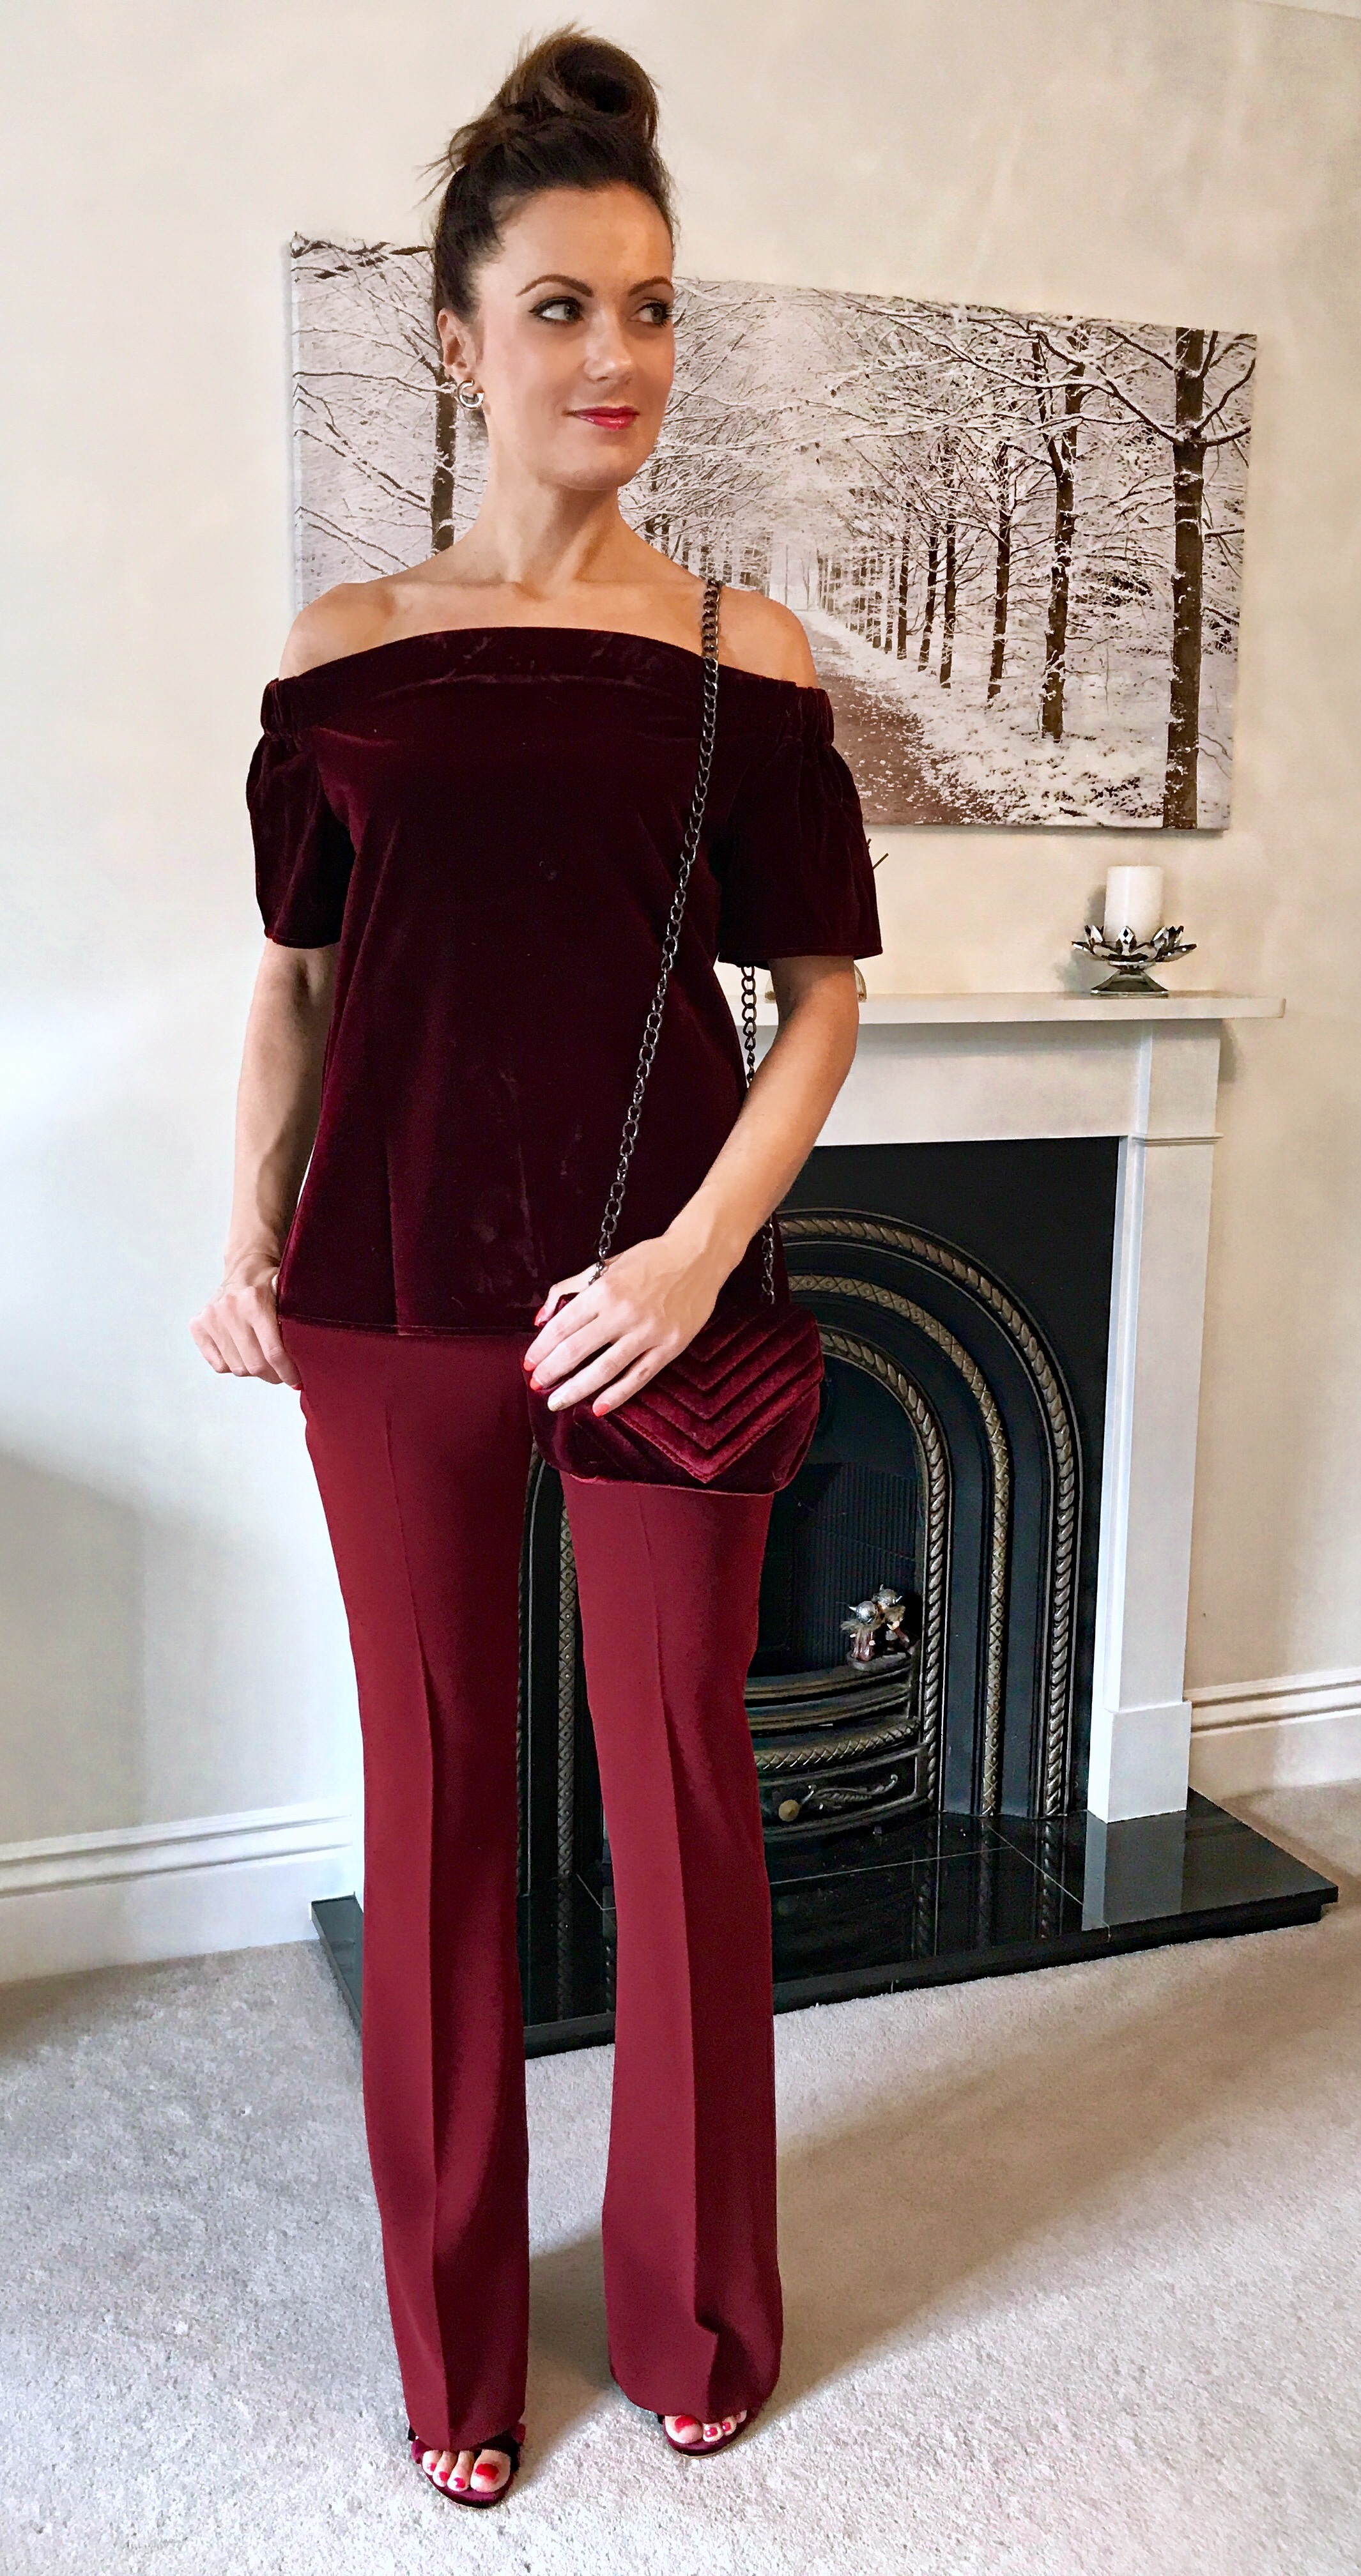 FALL 2017 FASHION TREND | VELVET | HOW TO WEAR IT NIGHT TO DAY